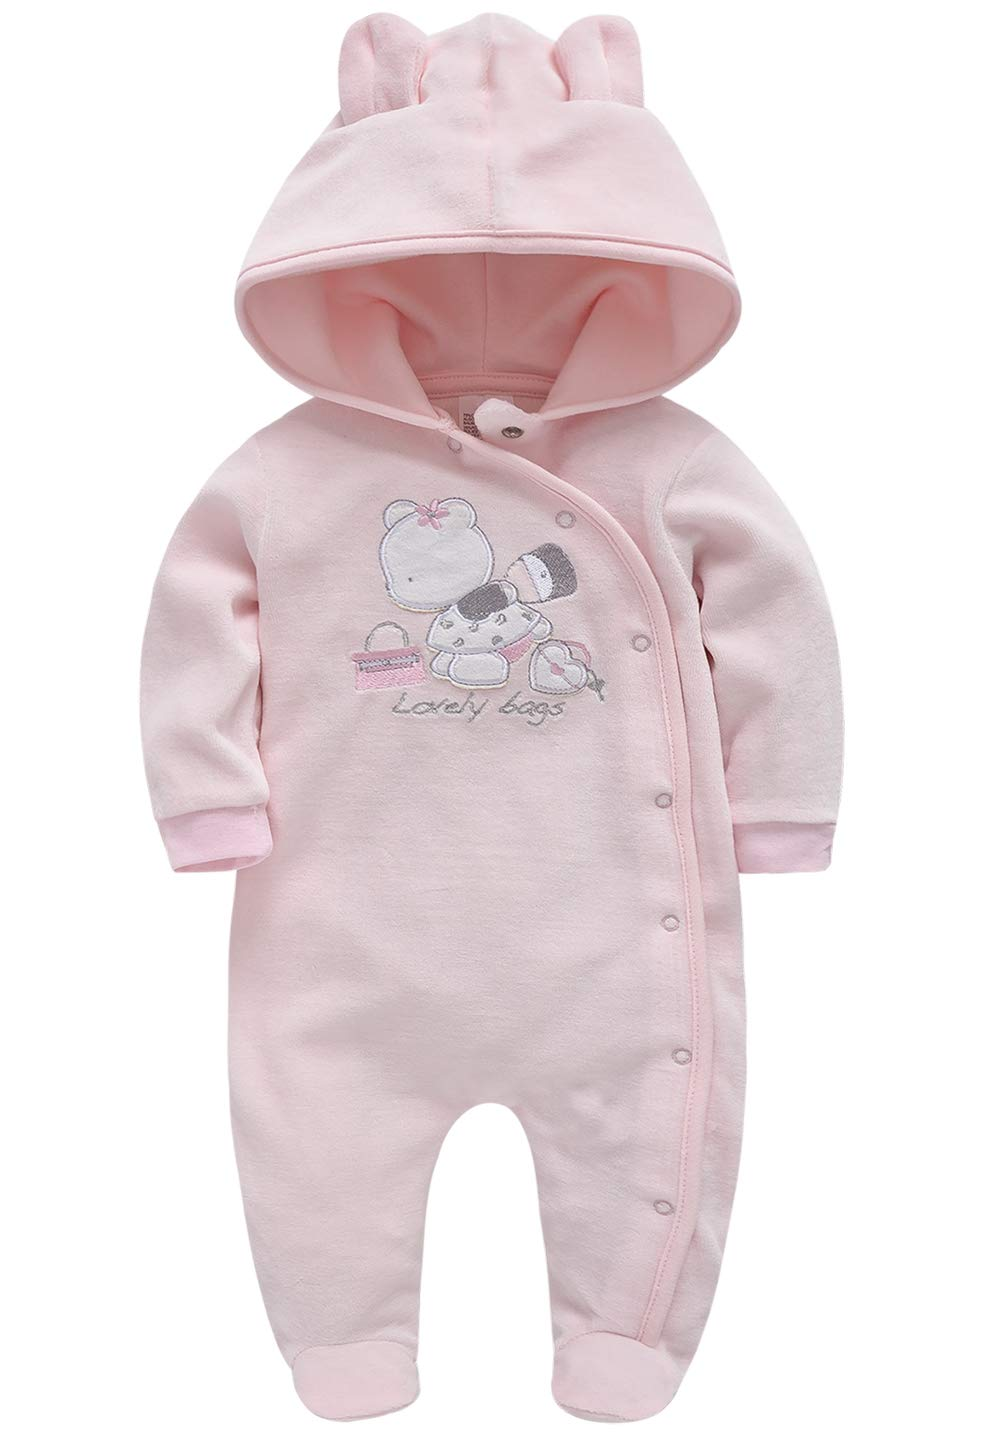 Fanient Baby Girls Boys Pajamas One-Piece Snug Fit Footed Sleep and Play Newborn Long Sleeve Zip Non-Slip Sleepers